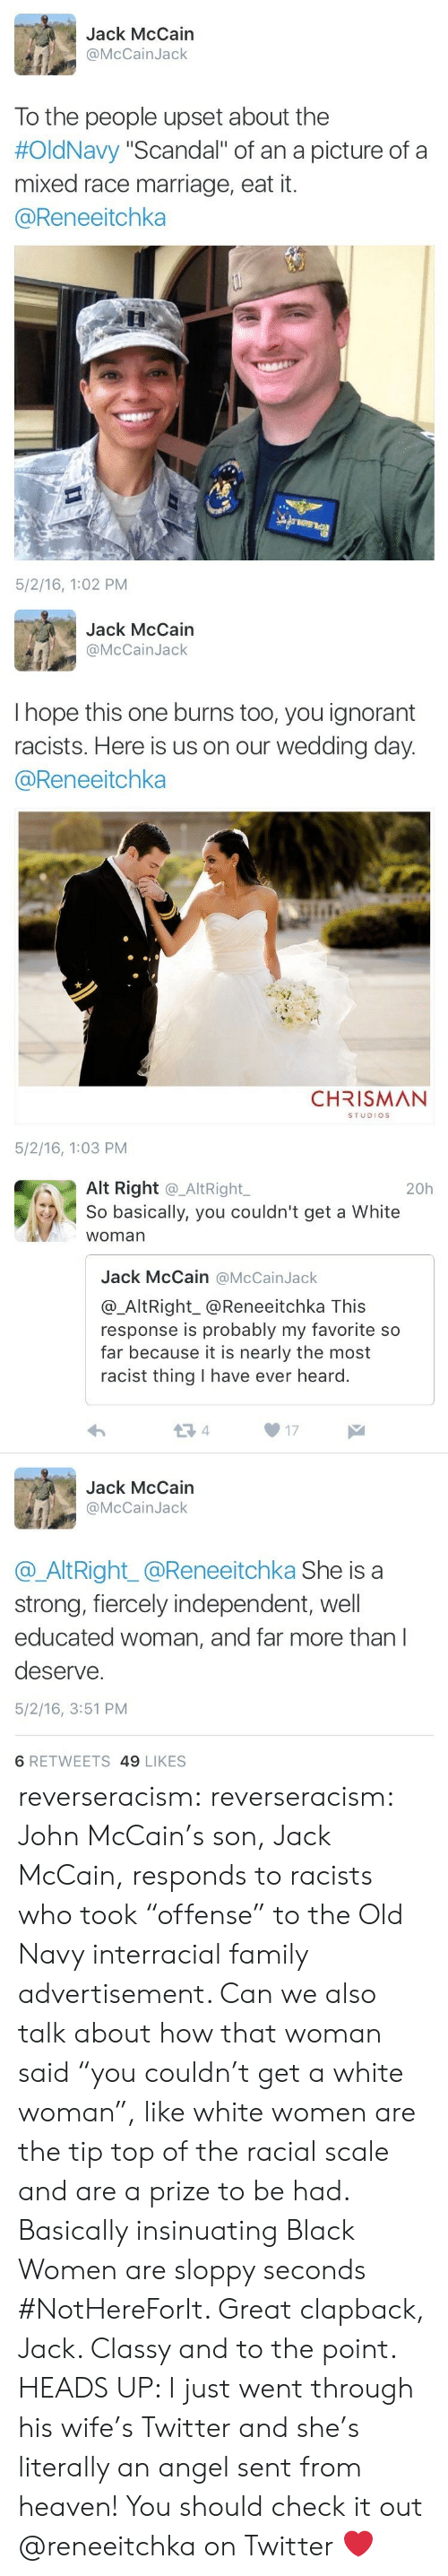 "Family, Heaven, and Ignorant: Jack McCain  @McCainJack  To the people upset about the  #OldNavy ""Scandal"" of an a picture of a  mixed race marriage, eat it.  @Reneeitchka  5/2/16, 1:02 PM   Jack McCain  @McCainJack  I hope this one burns too, you ignorant  racists. Here is us on our wedding day  @Reneeitchka  CHRISMAN  STUDIOS  5/2/16, 1:03 PM   Alt Right @_AltRight,  So basically, you couldn't get a White  woman  20h  Jack McCain @McCainJack  @_AltRight_@Reneeitchka This  response is probably my favorite so  far because it is nearly the most  racist thing I have ever heard.  13 4  17  Jack McCain  @McCainJack  @AltRight_@Reneeitchka She is a  strong, fiercely independent, well  educated woman, and far more than l  deserve.  5/2/16, 3:51 PM  6 RETWEETS 49 LIKES reverseracism:  reverseracism:  John McCain's son, Jack McCain, responds to racists who took ""offense"" to the Old Navy interracial family advertisement.   Can we also talk about how that woman said ""you couldn't get a white woman"", like white women are the tip top of the racial scale and are a prize to be had. Basically insinuating Black Women are sloppy seconds #NotHereForIt. Great clapback, Jack. Classy and to the point.  HEADS UP: I just went through his wife's Twitter and she's literally an angel sent from heaven!  You should check it out @reneeitchka on Twitter ❤️"